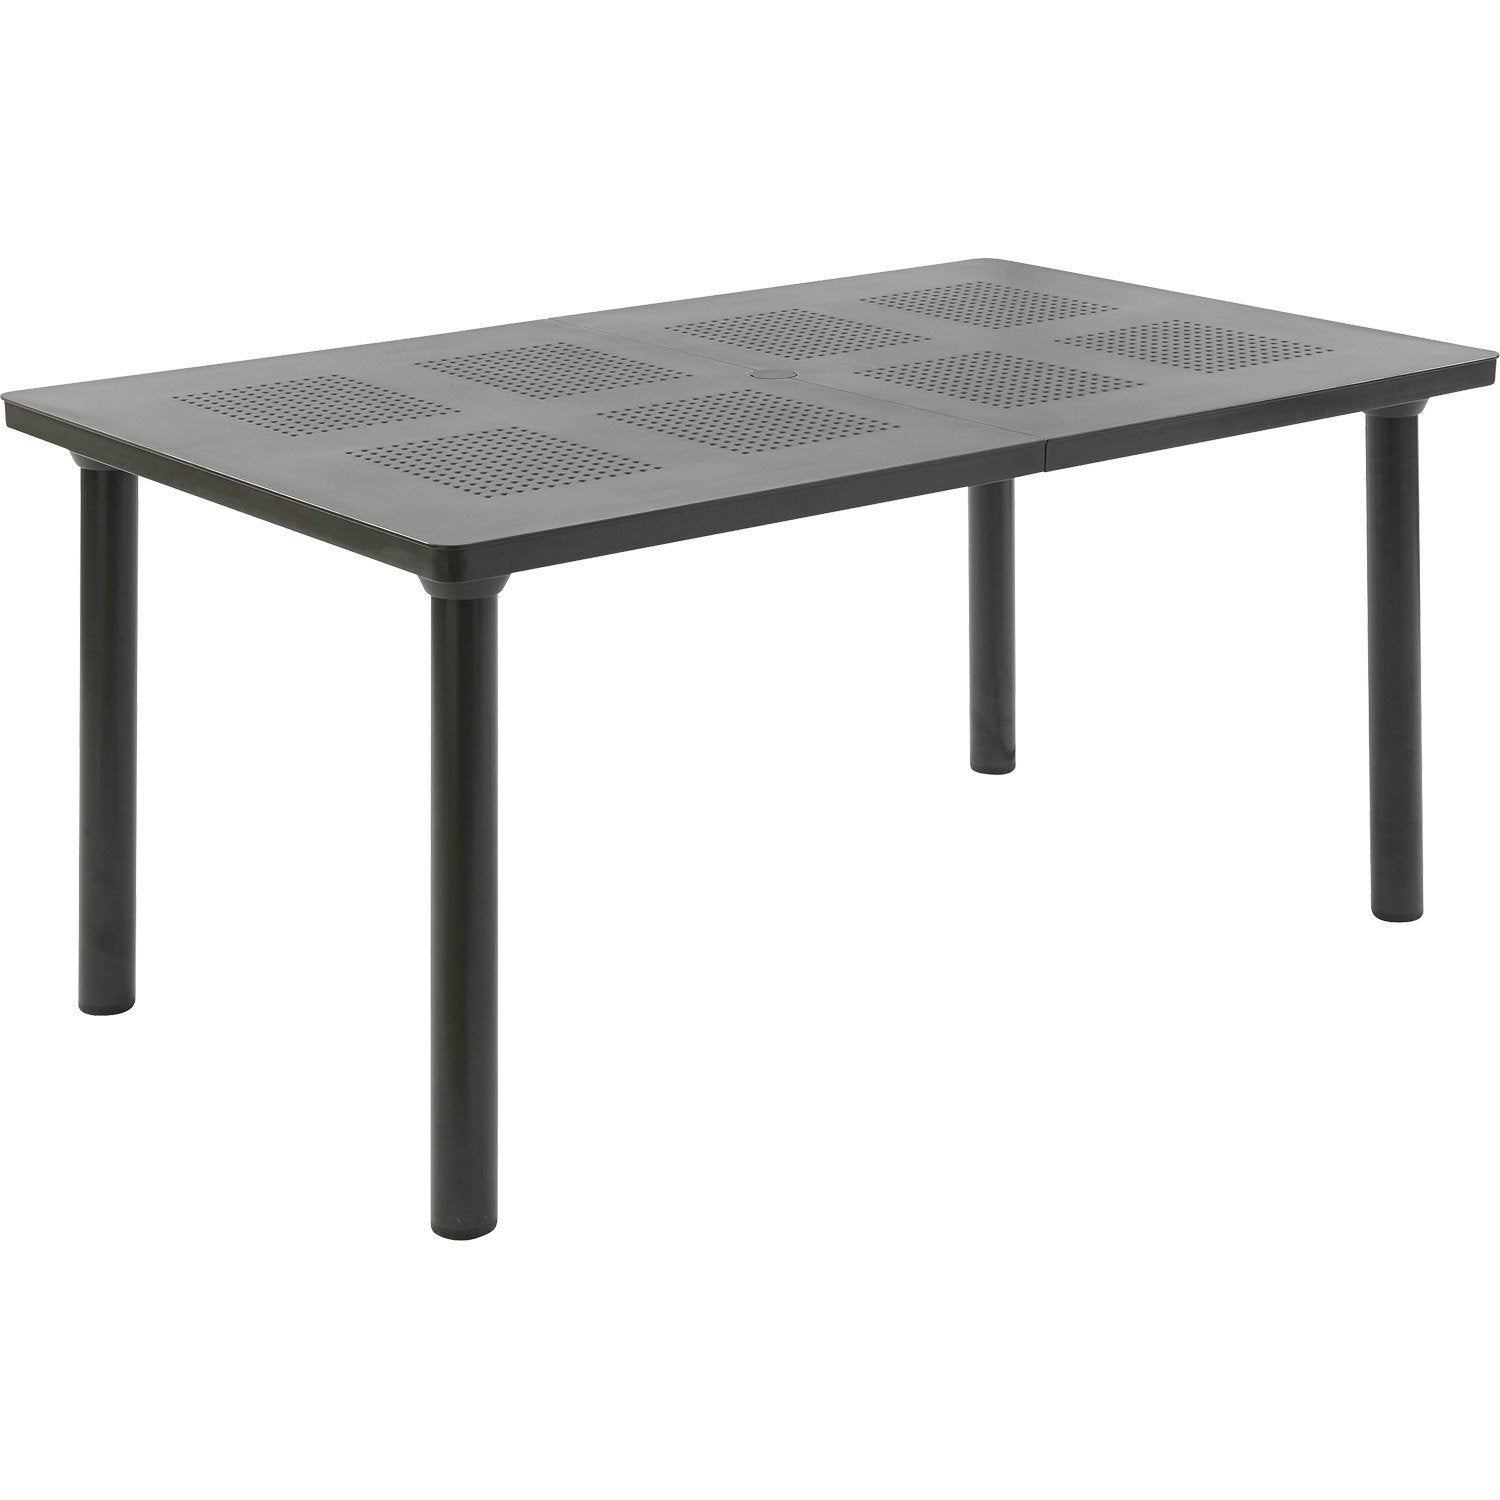 Table de salon exterieur mobilier sur enperdresonlapin - Table rabattable leroy merlin ...